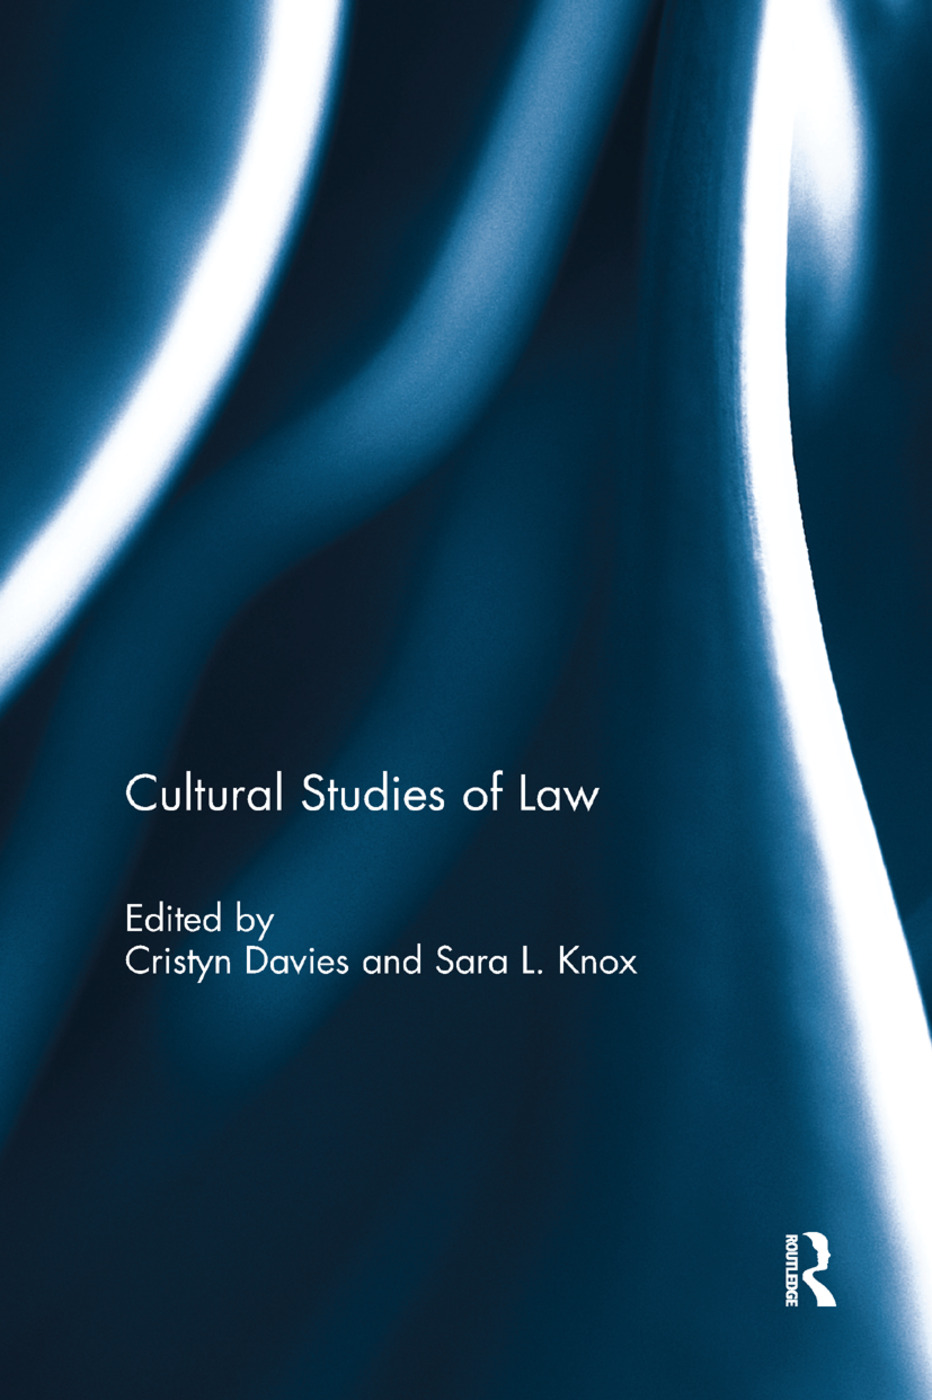 Cultural Studies of Law